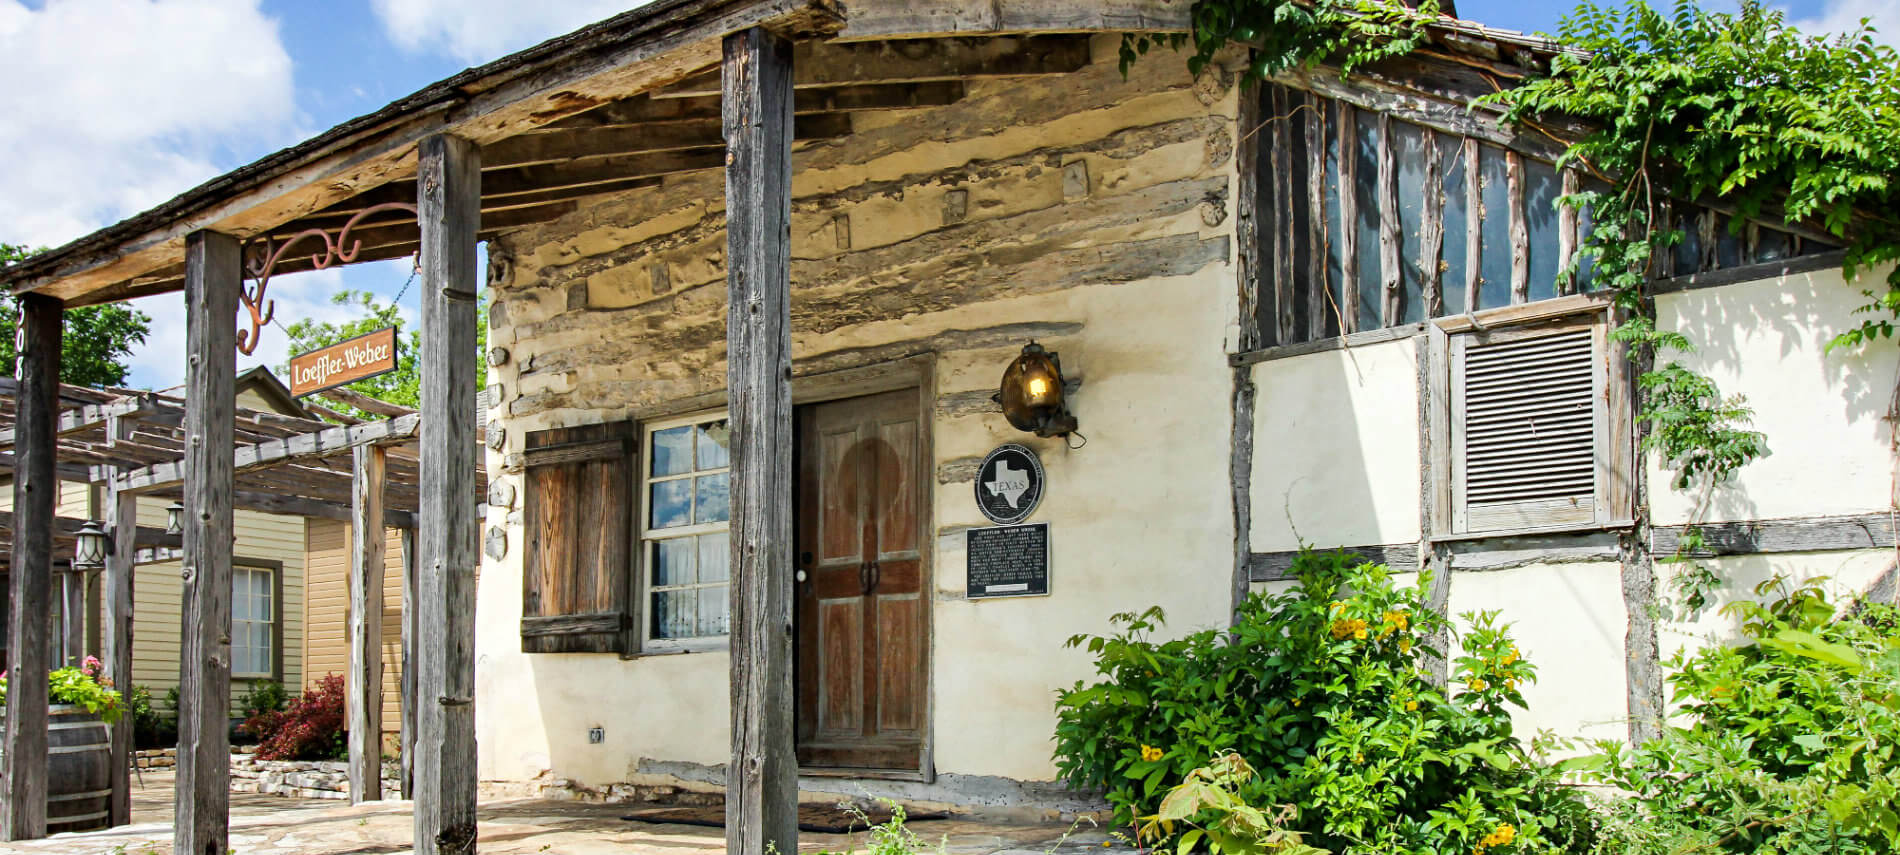 covered wooden porch and facade with brown door of historic Loeffler Weber Cabin